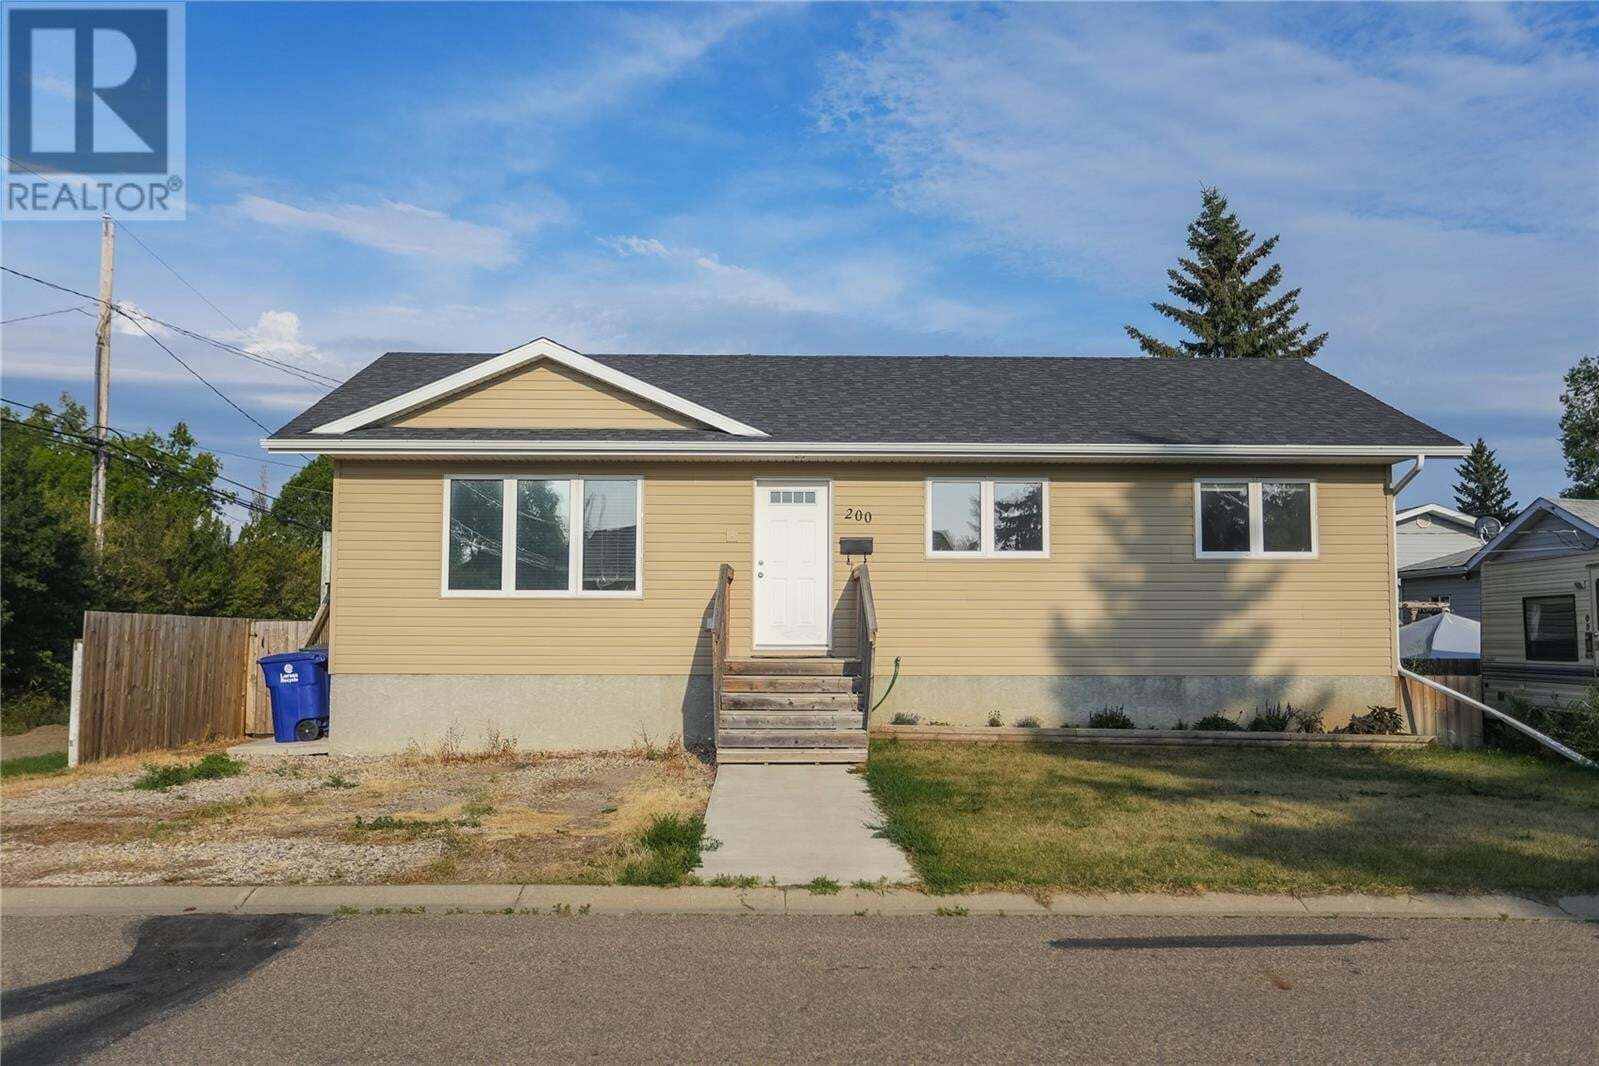 House for sale at 200 2nd Ave S Warman Saskatchewan - MLS: SK830566